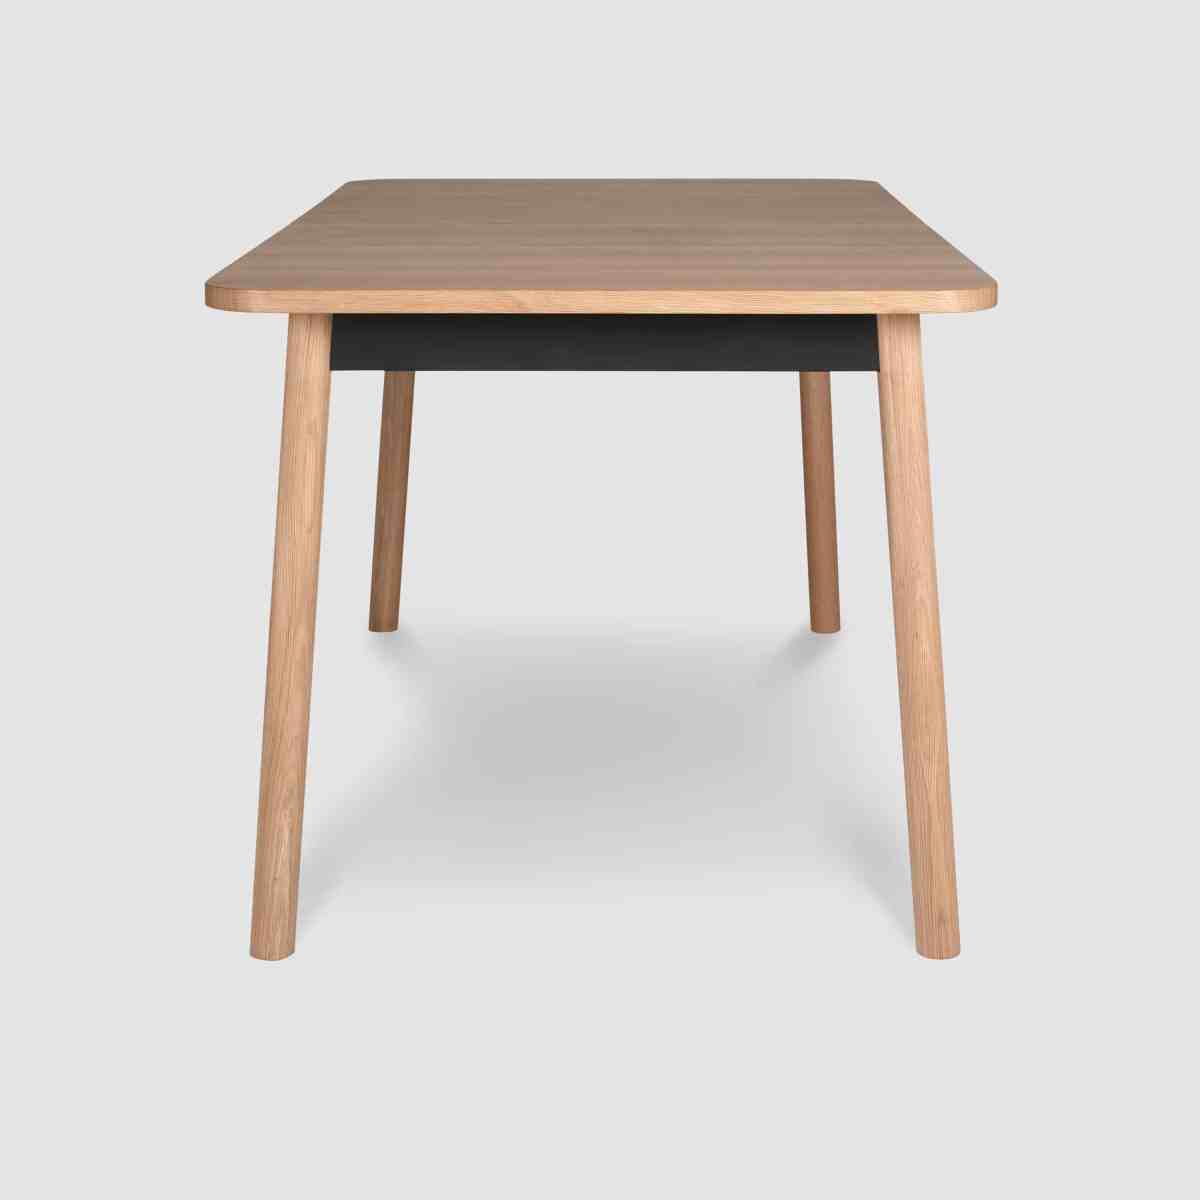 semley-dining-table-oak-another-country-001